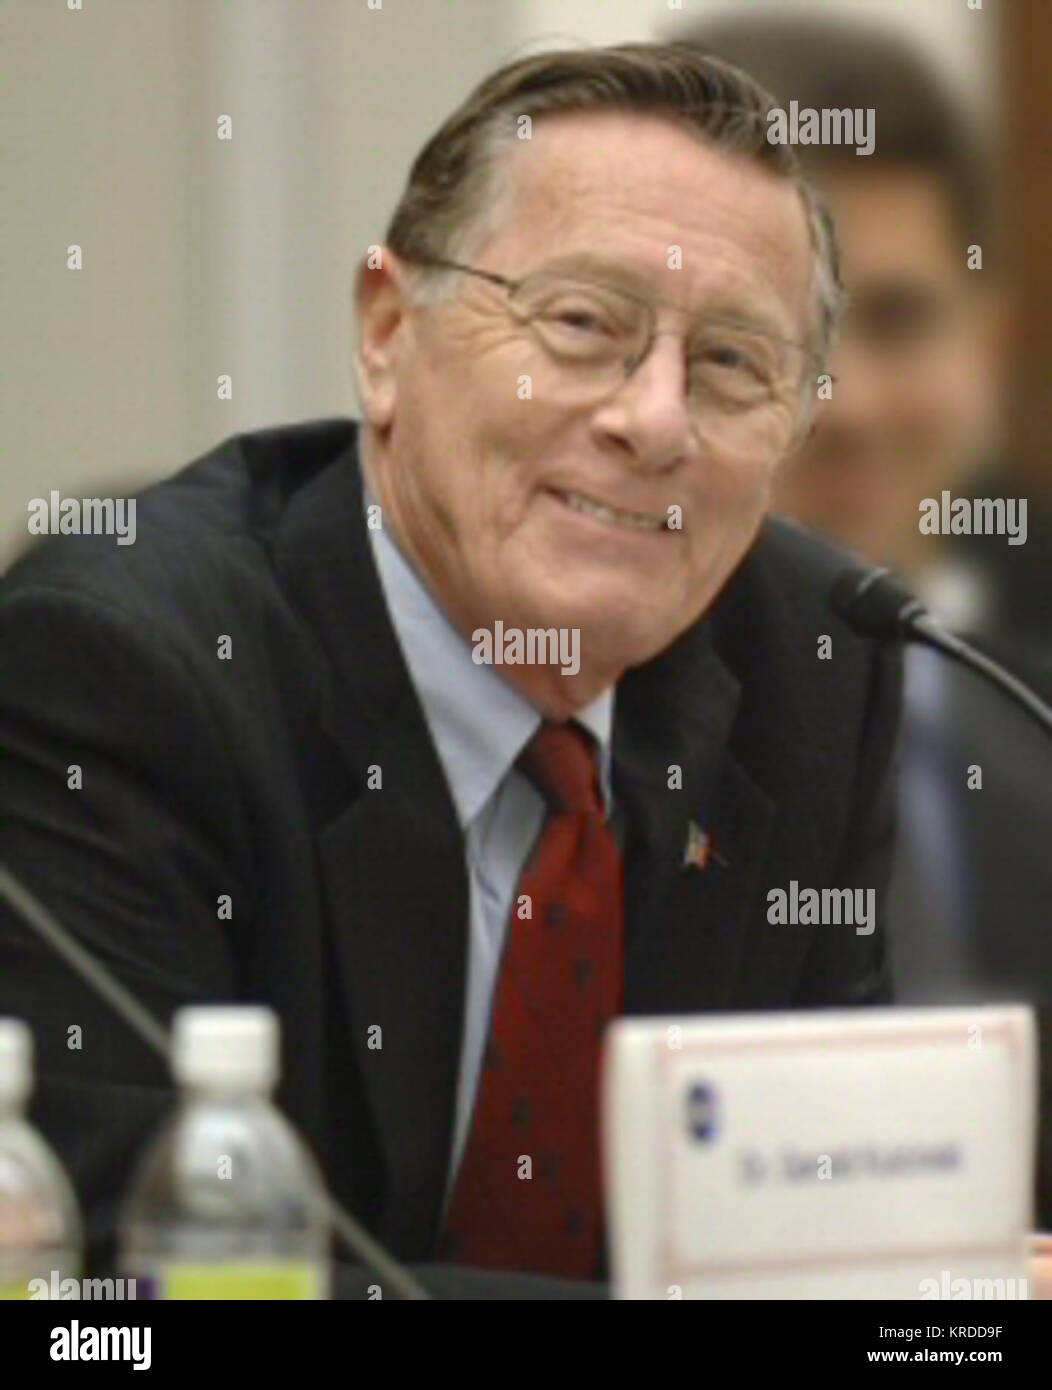 Lt. Gen. James A. Abrahamson talks during the NASA adisory Council meeting held at the Rayburn Building on Capitol - Stock Image